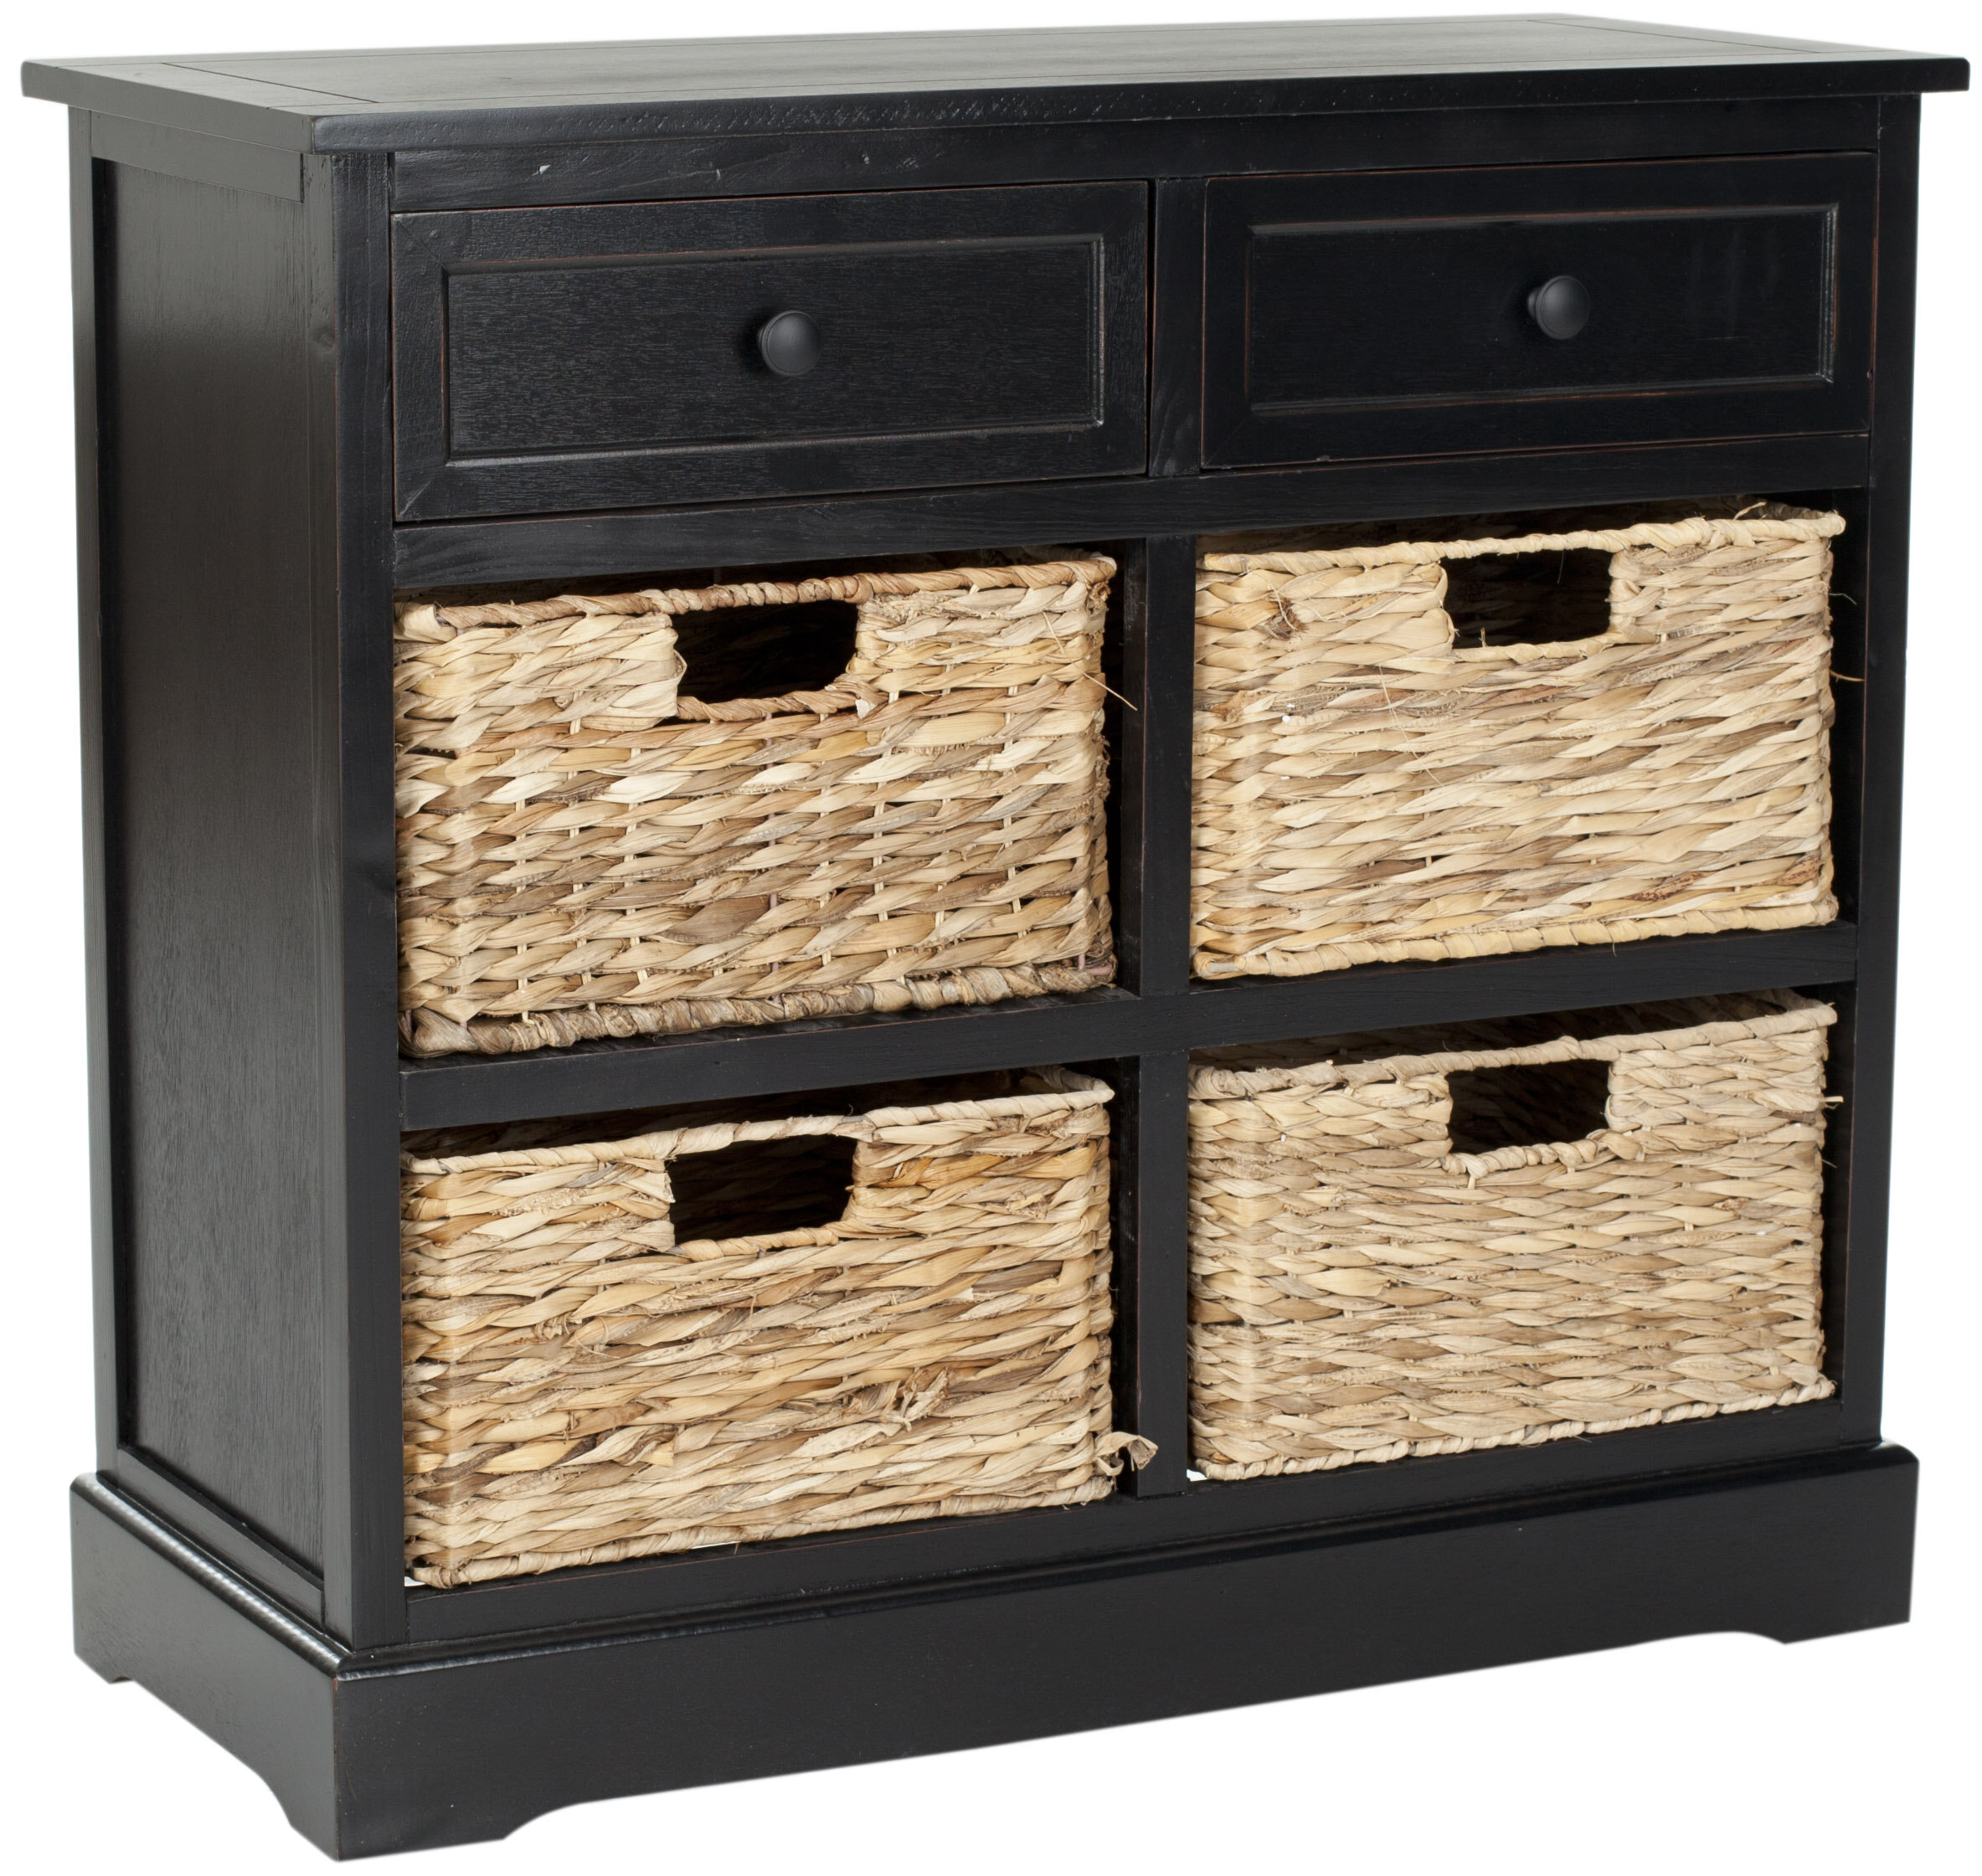 furniture design trent austin herard dresser reviews drawer wayfair pdp ca